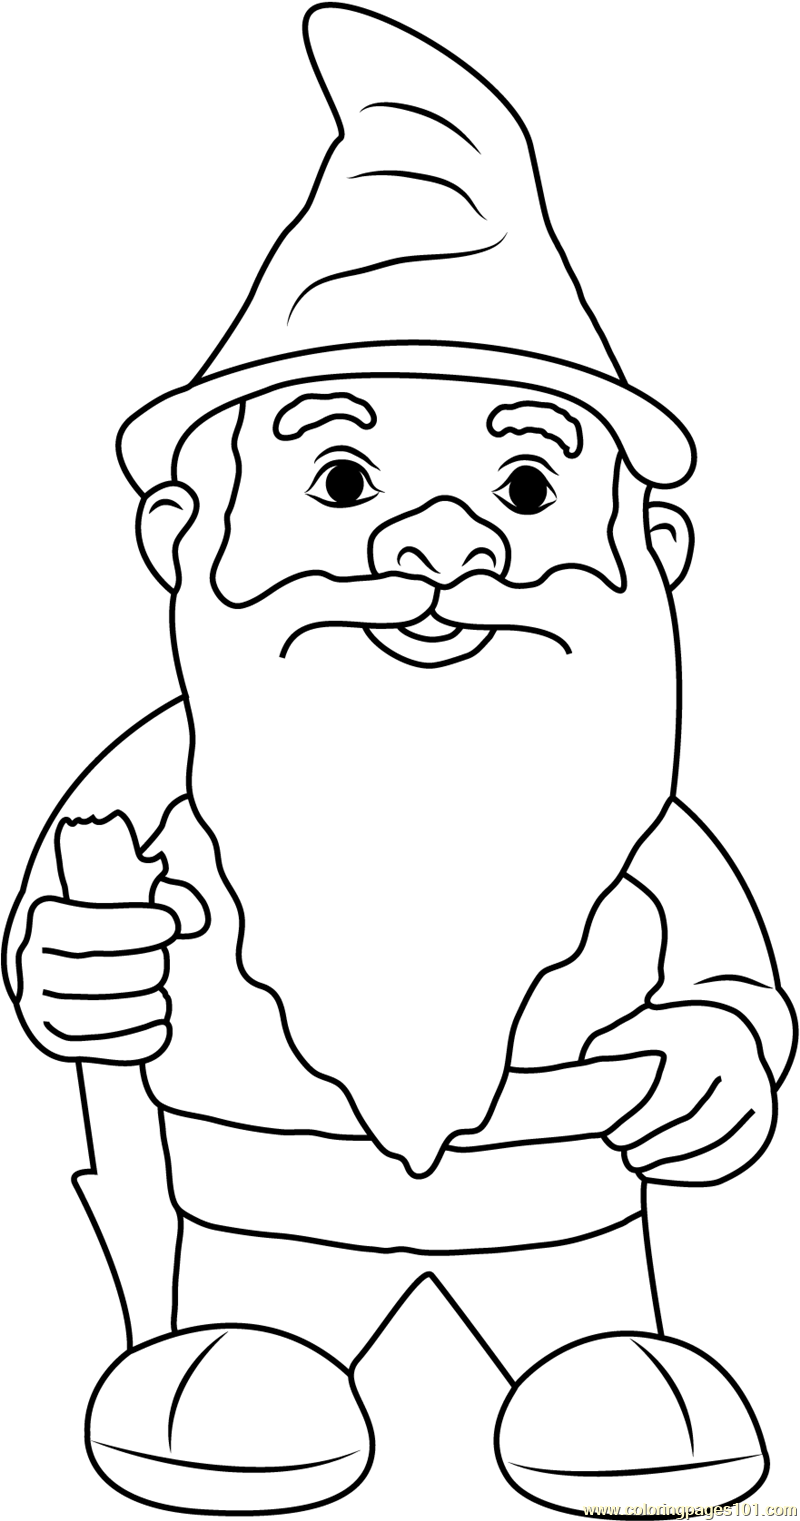 Fluffy Beard printable coloring page in 2020 (With